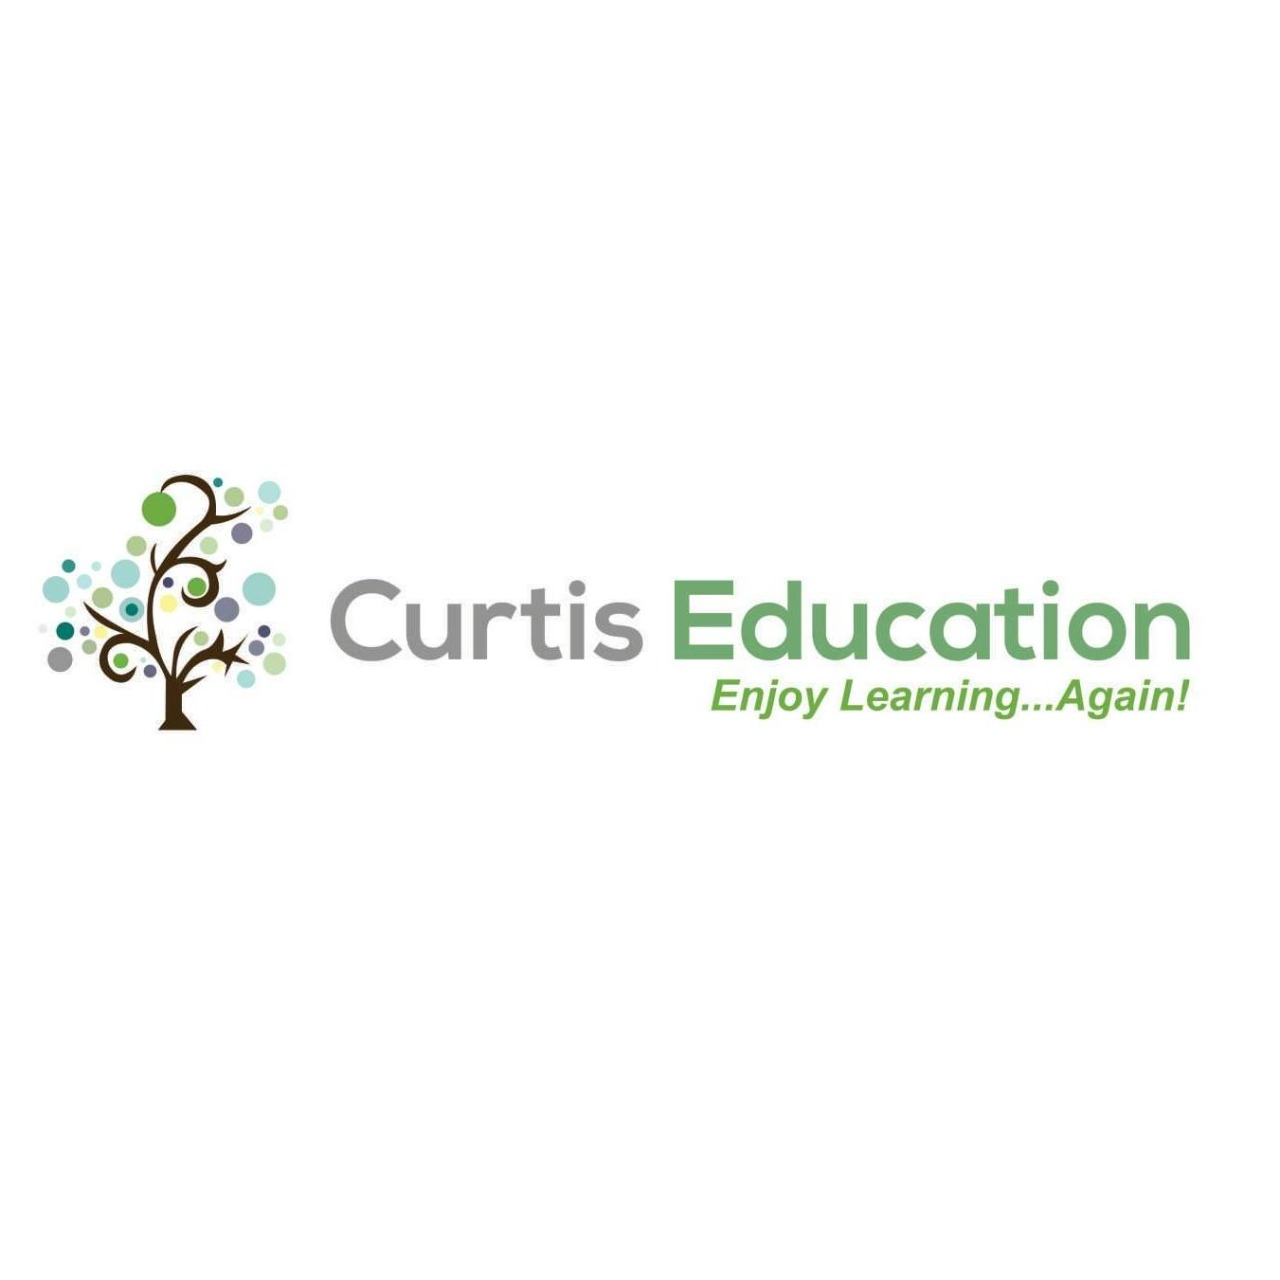 Curtis Education